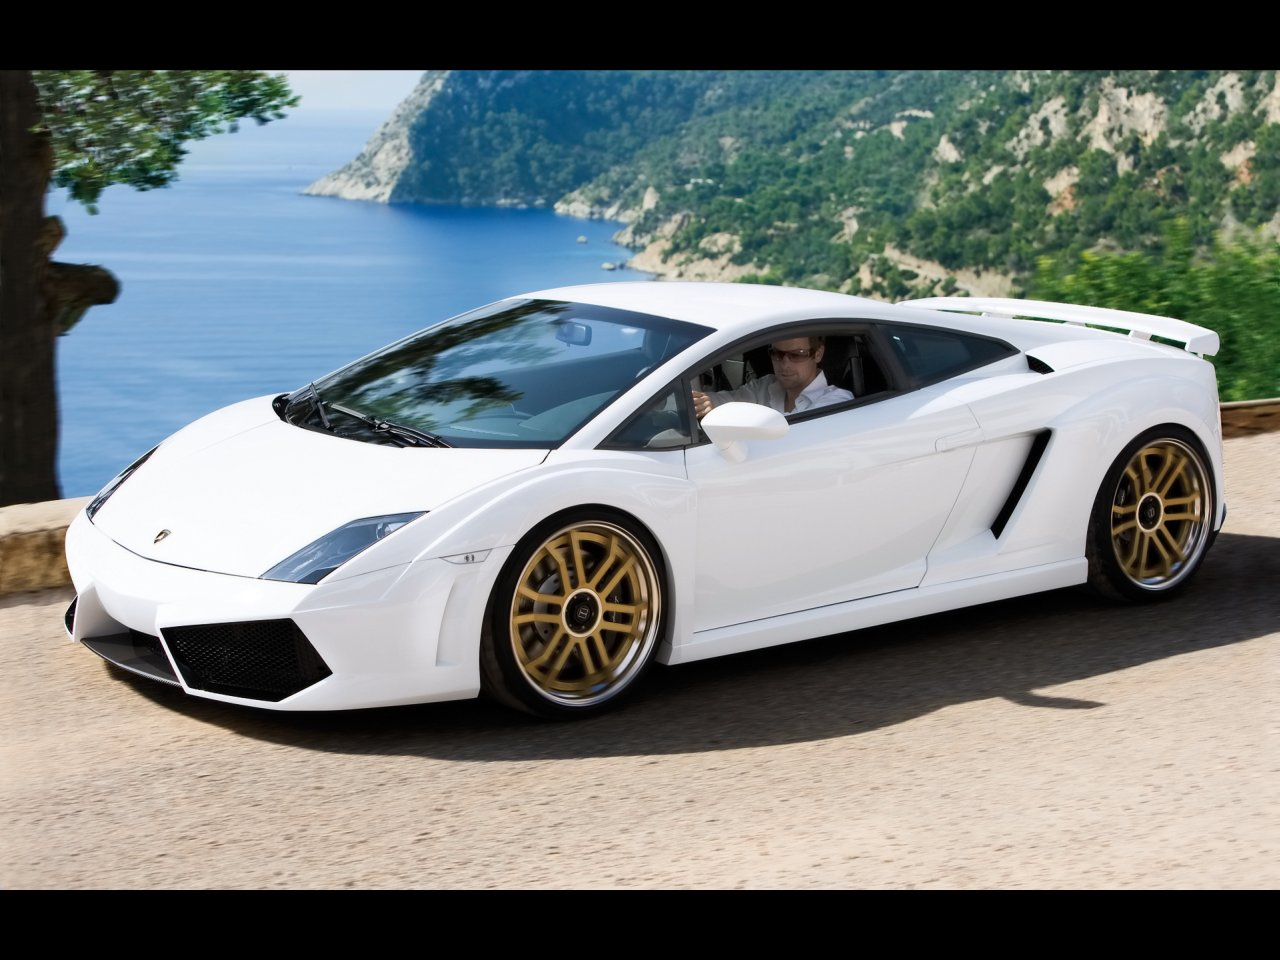 Lamborghini Gallardo Desktop Images 9265 High Resolution